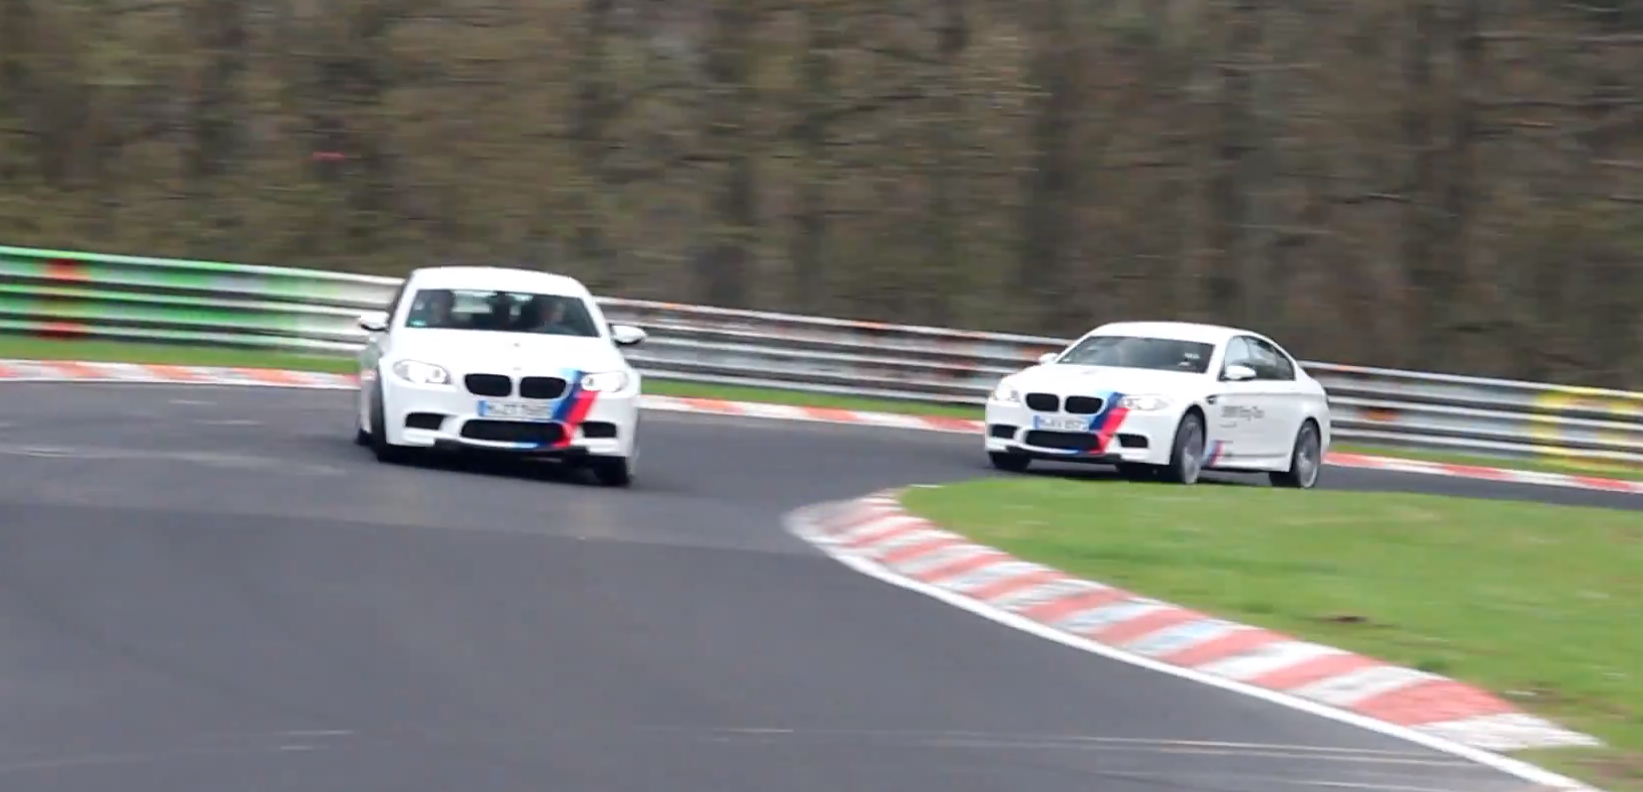 Watch Two Bmw m5 Ring Taxis